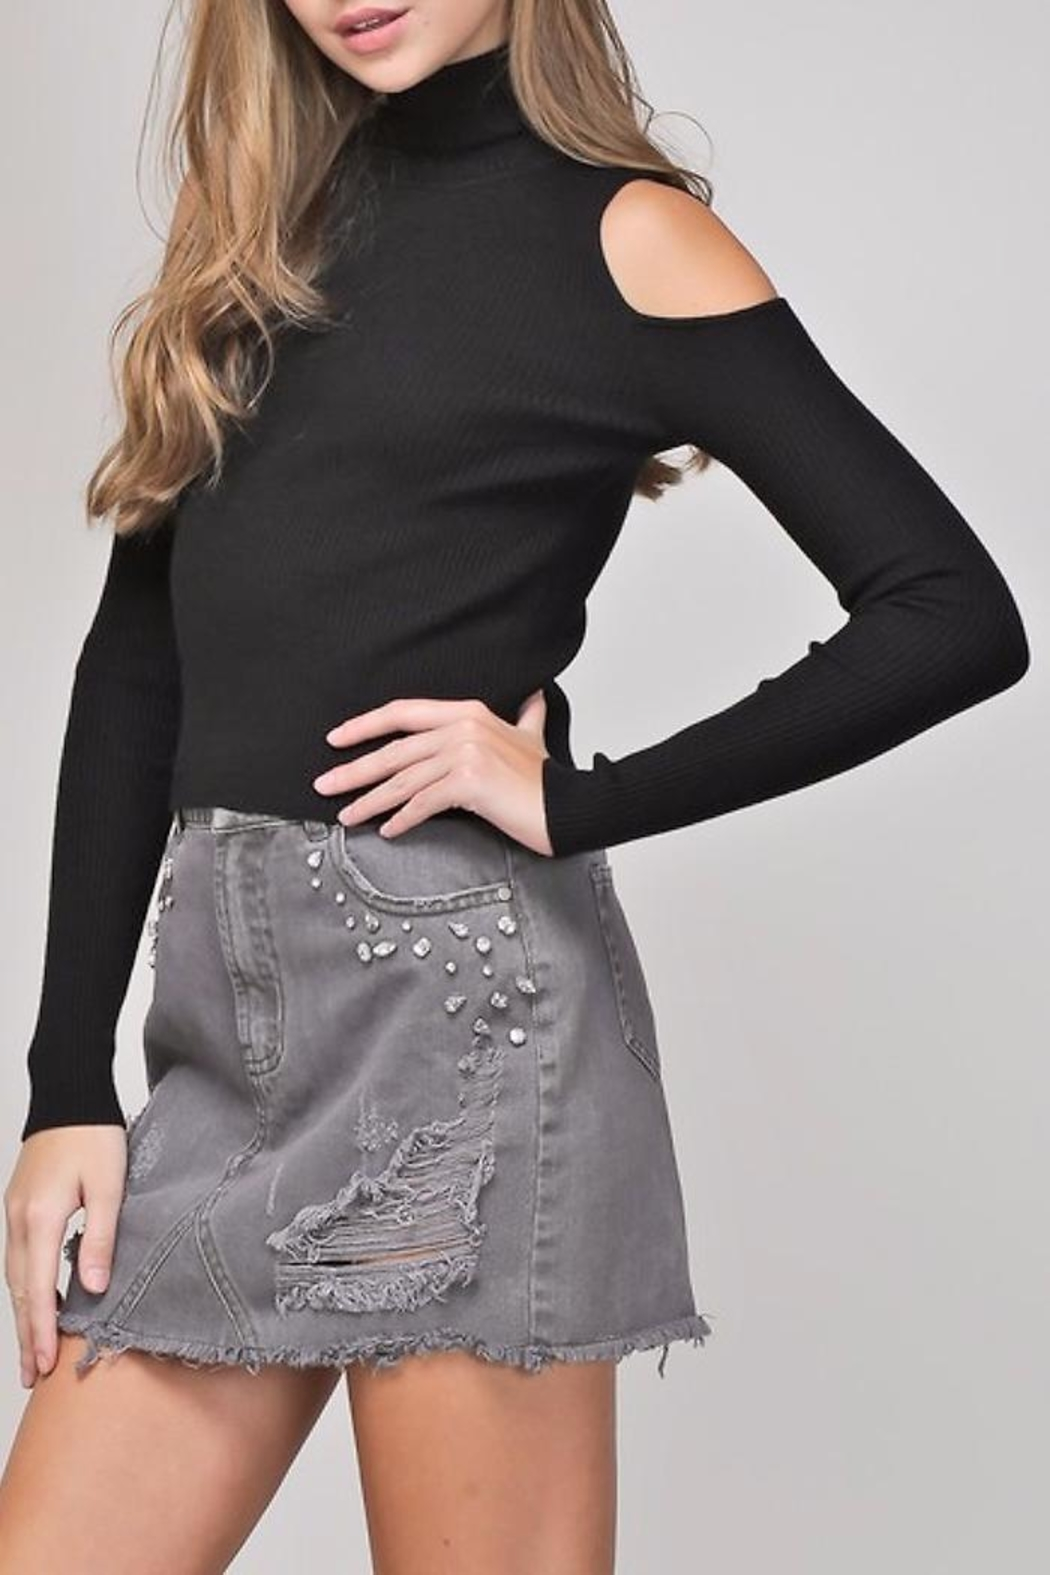 People Outfitter Mia Knit Top - Side Cropped Image